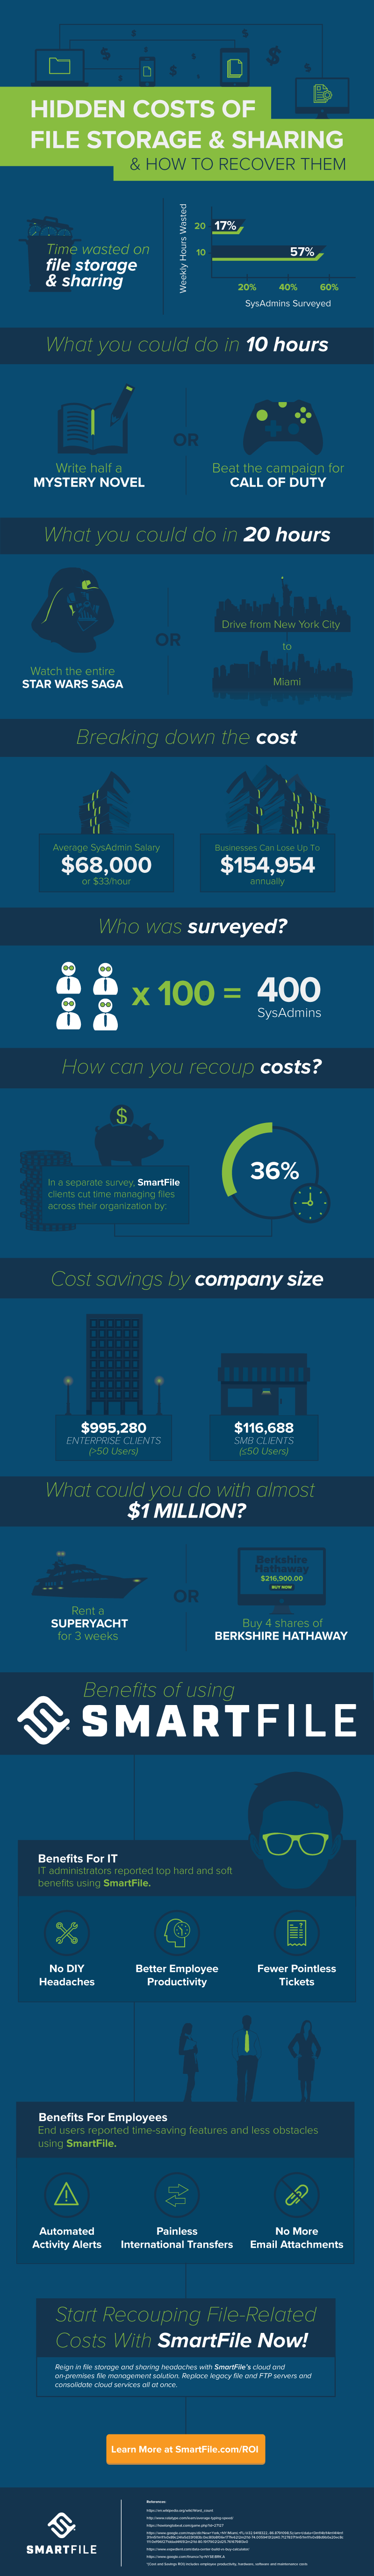 costs of file sharing